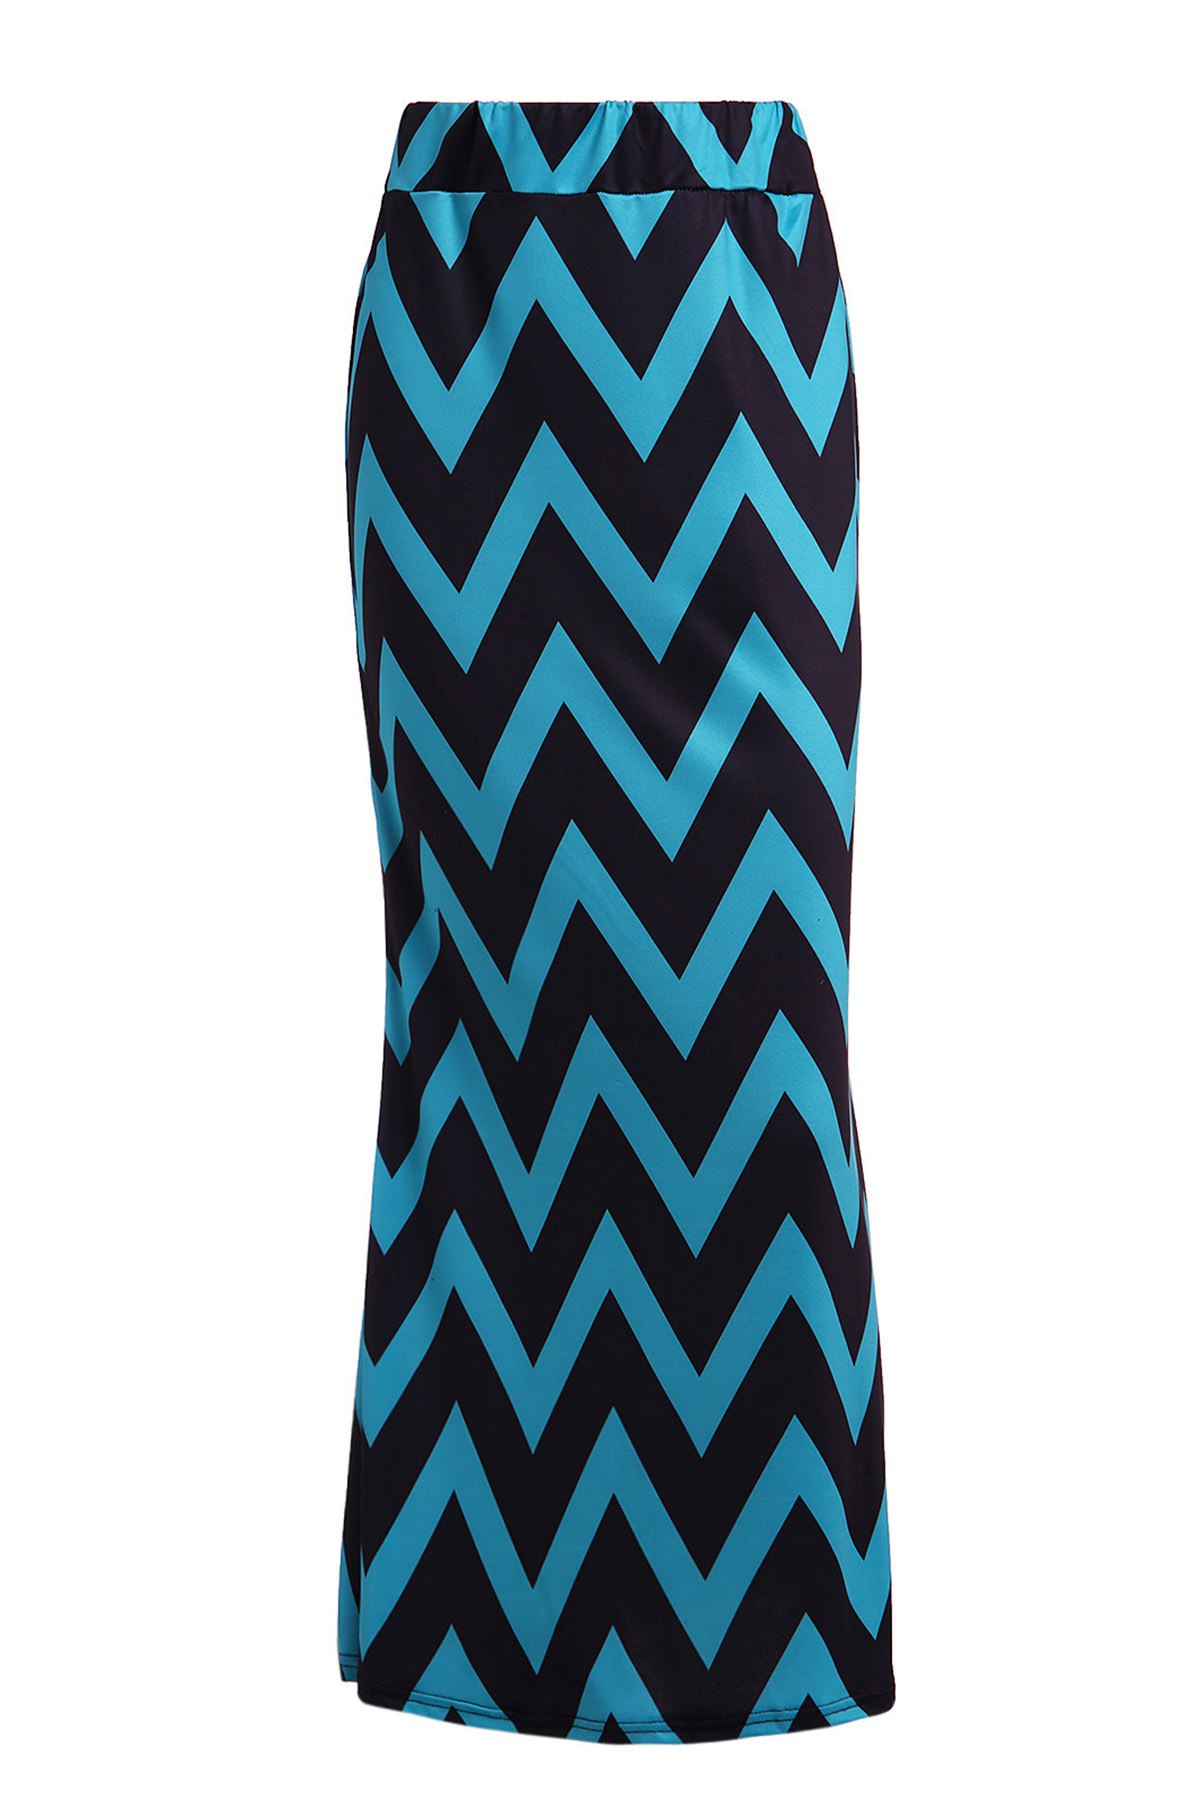 Sweet Zigzag Color Block Skirt For Women - BLUE/BLACK M